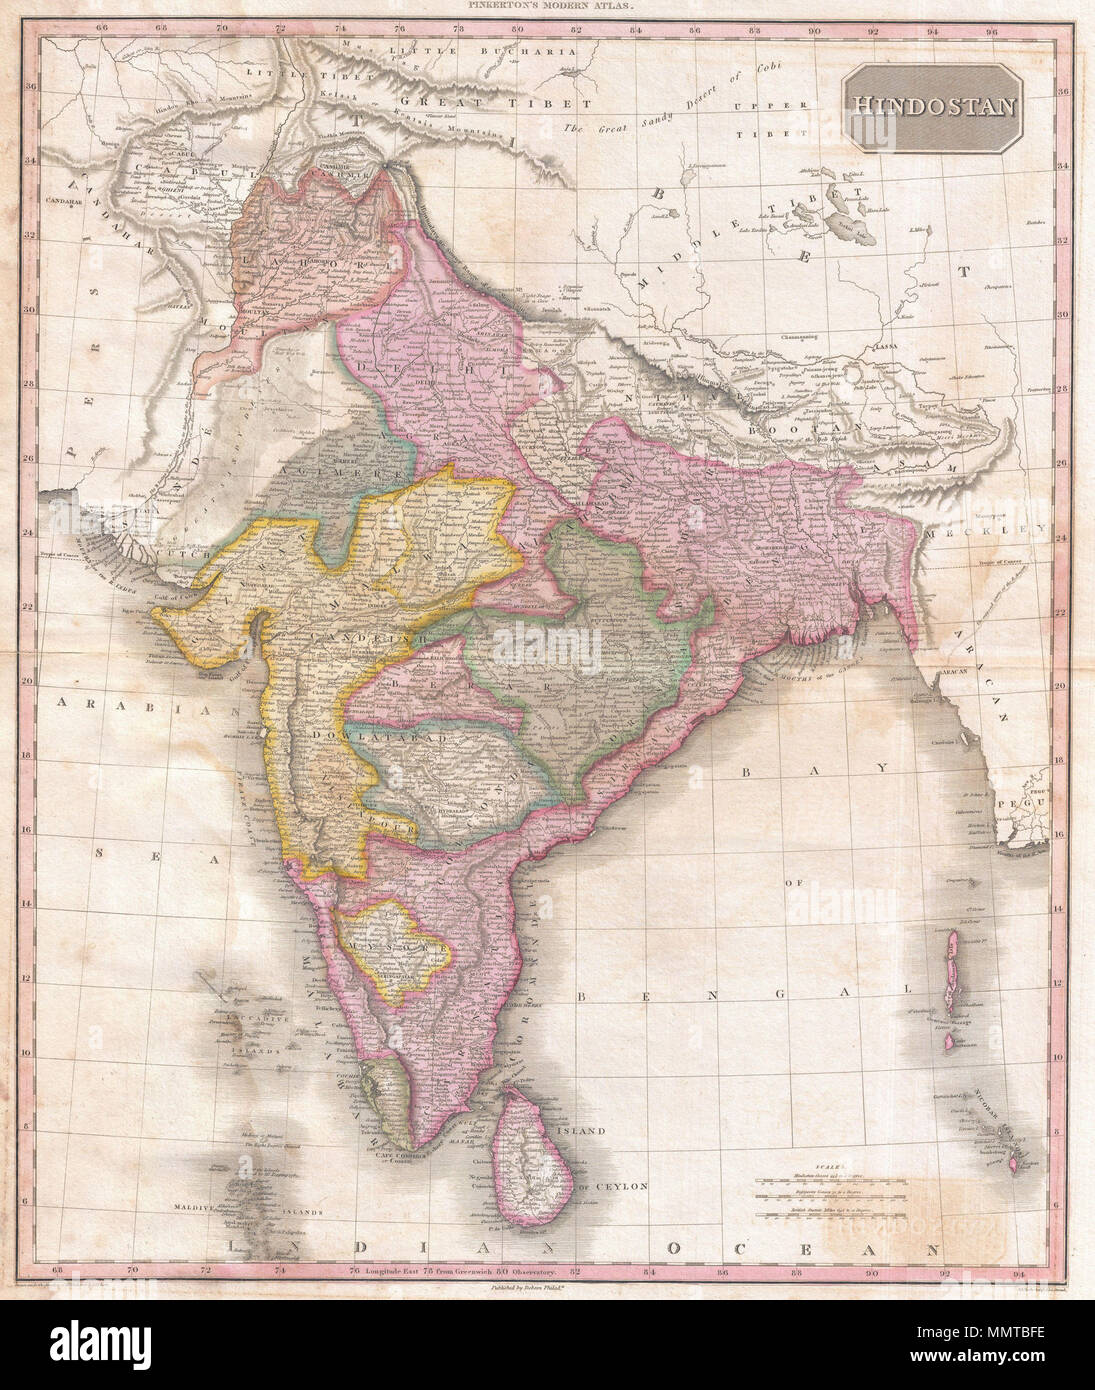 English: John Pinkerton's highly decorative map of India ... on strasbourg map, gstaad map, basel map, hanover map, swiss alps map, zermatt map, dissolution soviet union map, lugano map, wald map, stockholm sweden map, verbier map,